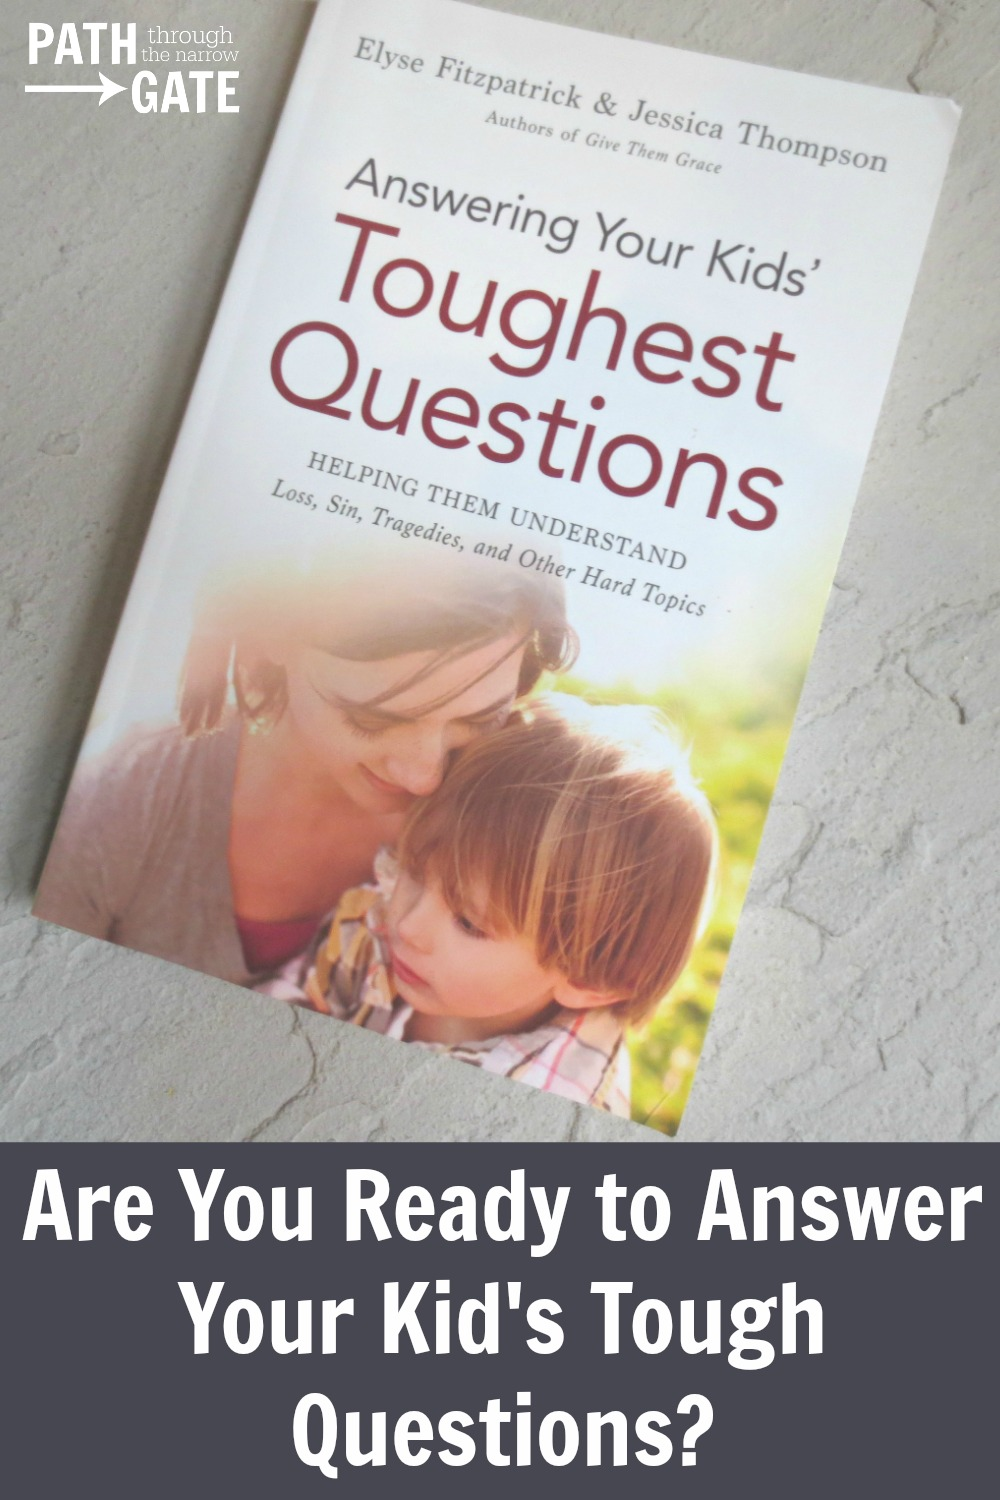 Are you ready to answer your kids' difficult questions? Answering Your Kids' Toughest Questions: Helping Them Understand Loss, Sin, Tragedies, and Other Hard Topics was written specifically to help parents answer their kids' tough questions from a Biblical perspective.